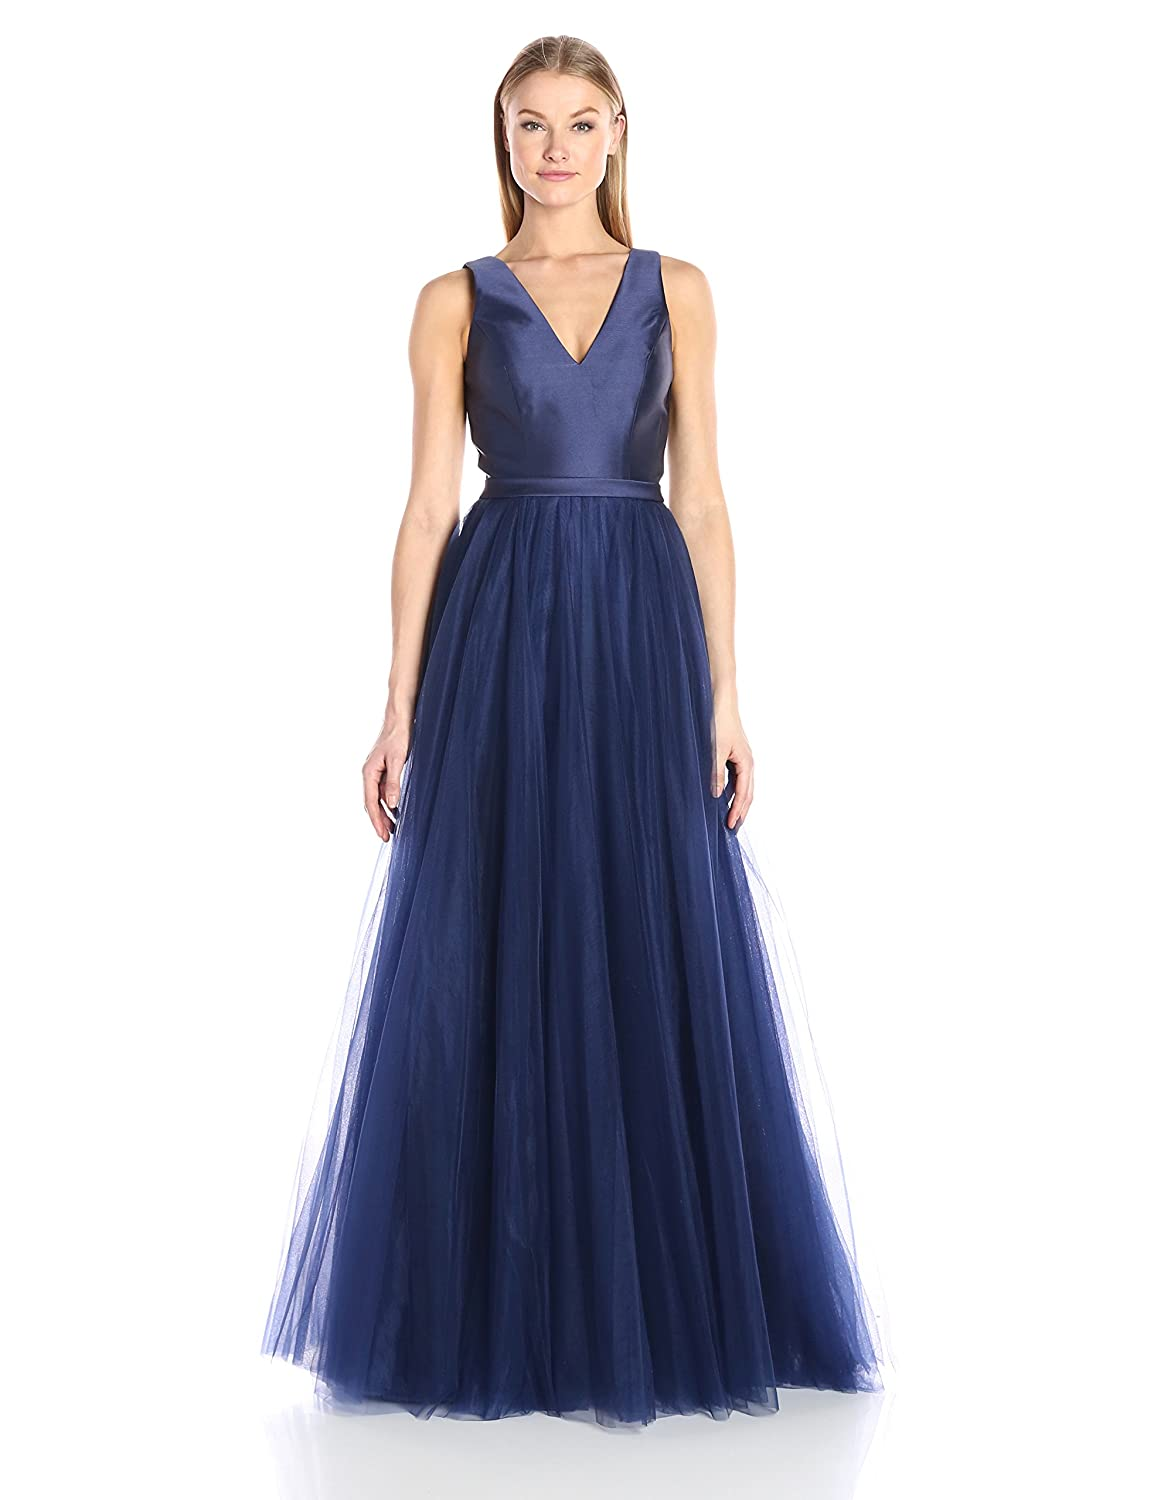 52cc2539ceb Amazon.com  Mac Duggal Women s Satin and Tulle Ballgown  Clothing